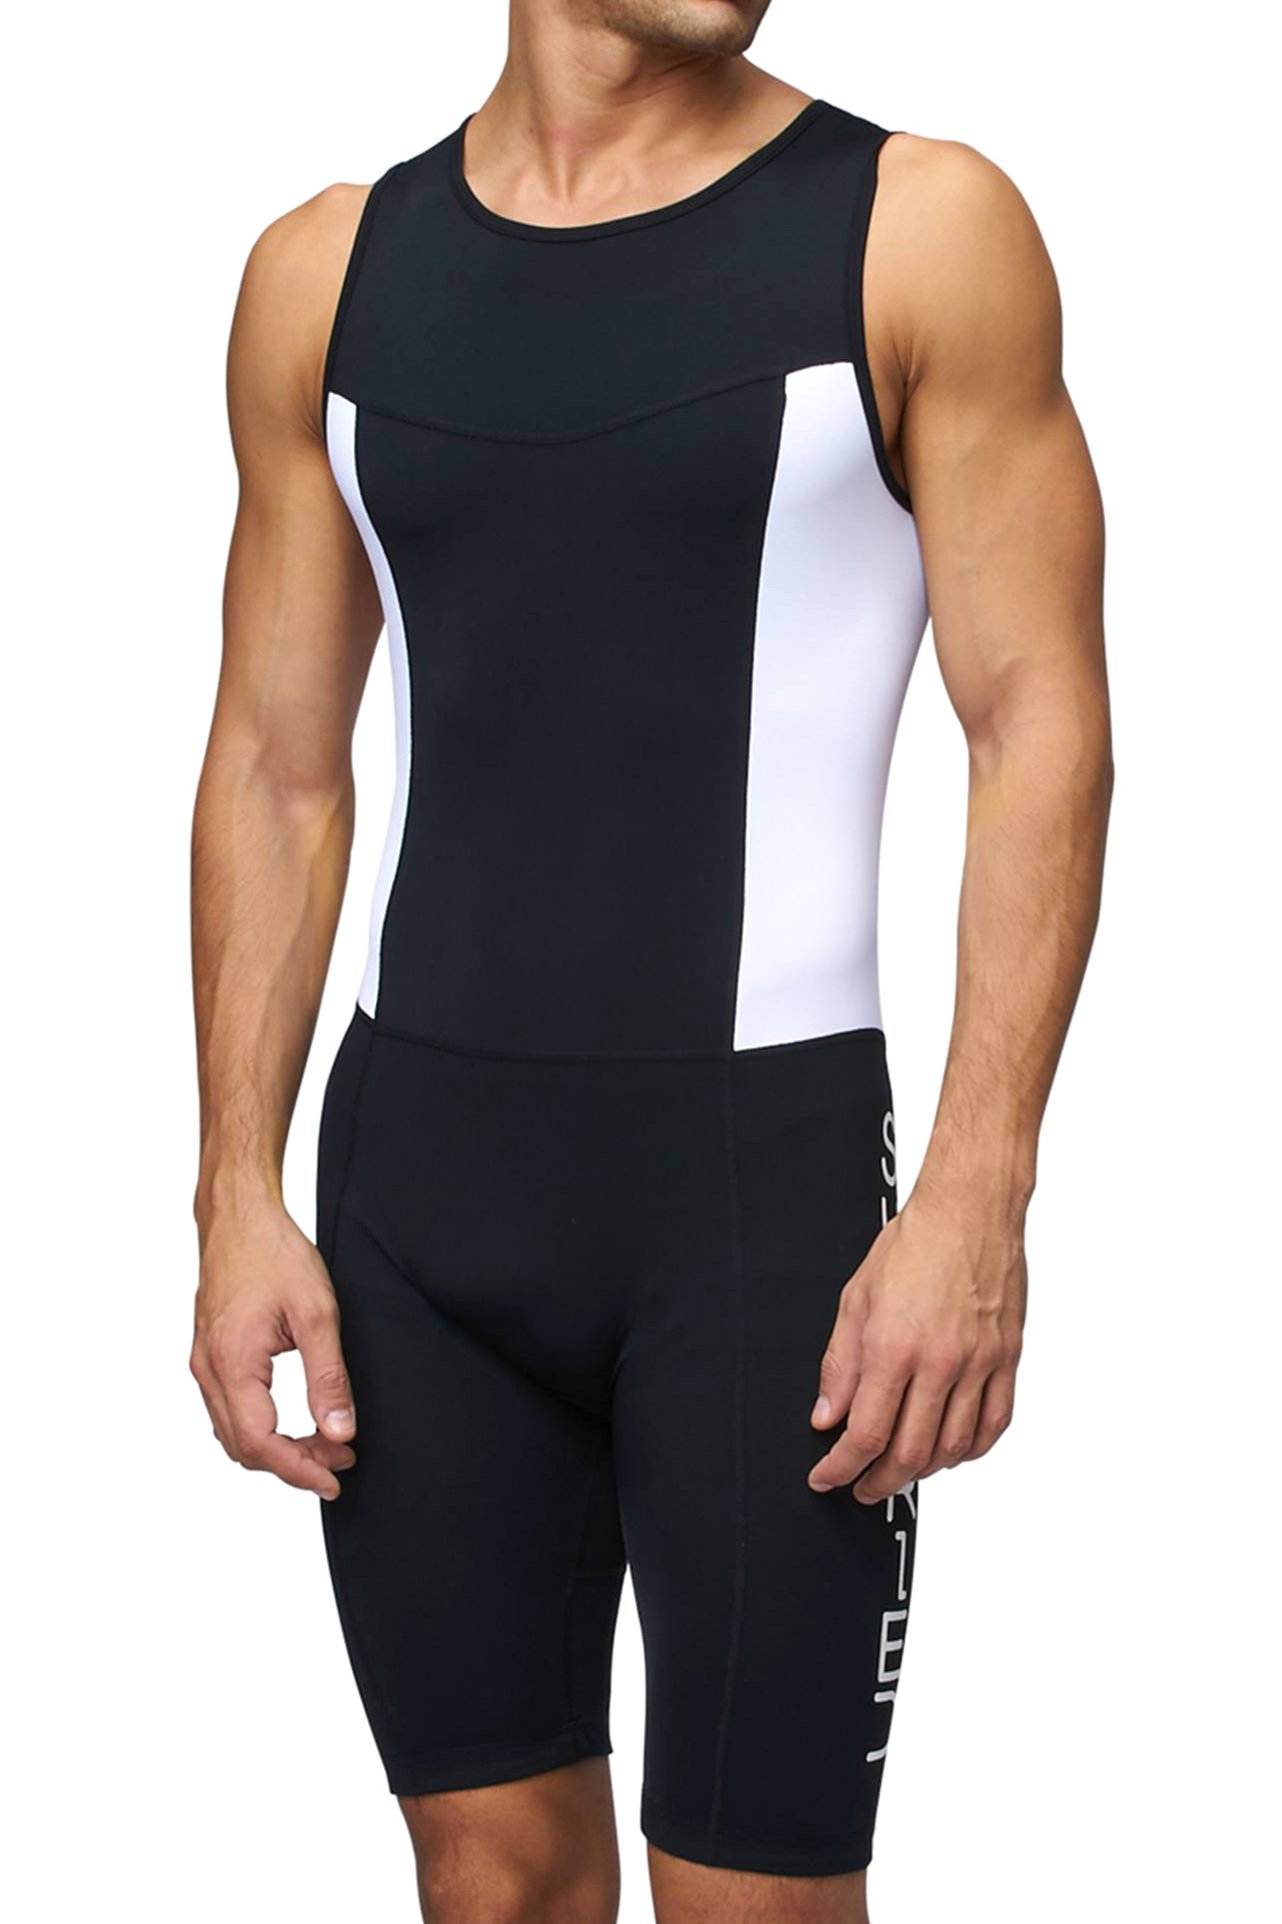 20d5ab9d32b Get Quotations · Sundried Mens Premium Padded Triathlon Tri Suit  Compression Duathlon Running Swimming Cycling skin suit